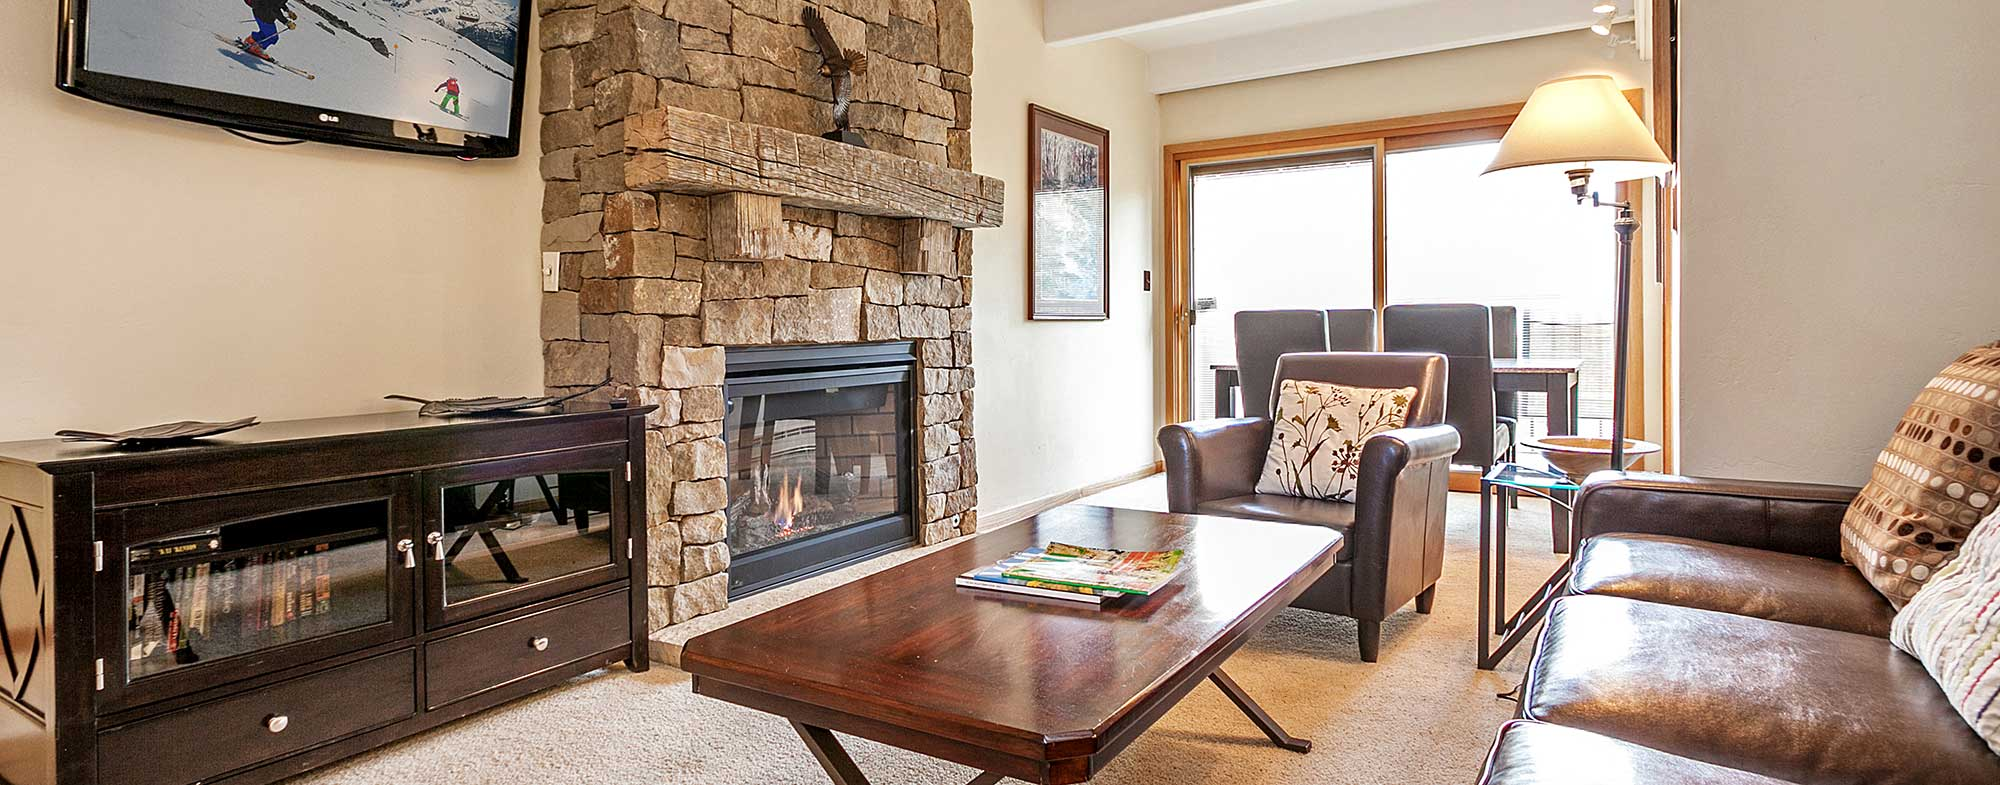 vail colorado condos for rent - 2 bedroom / 2 bath 900 sqft condos